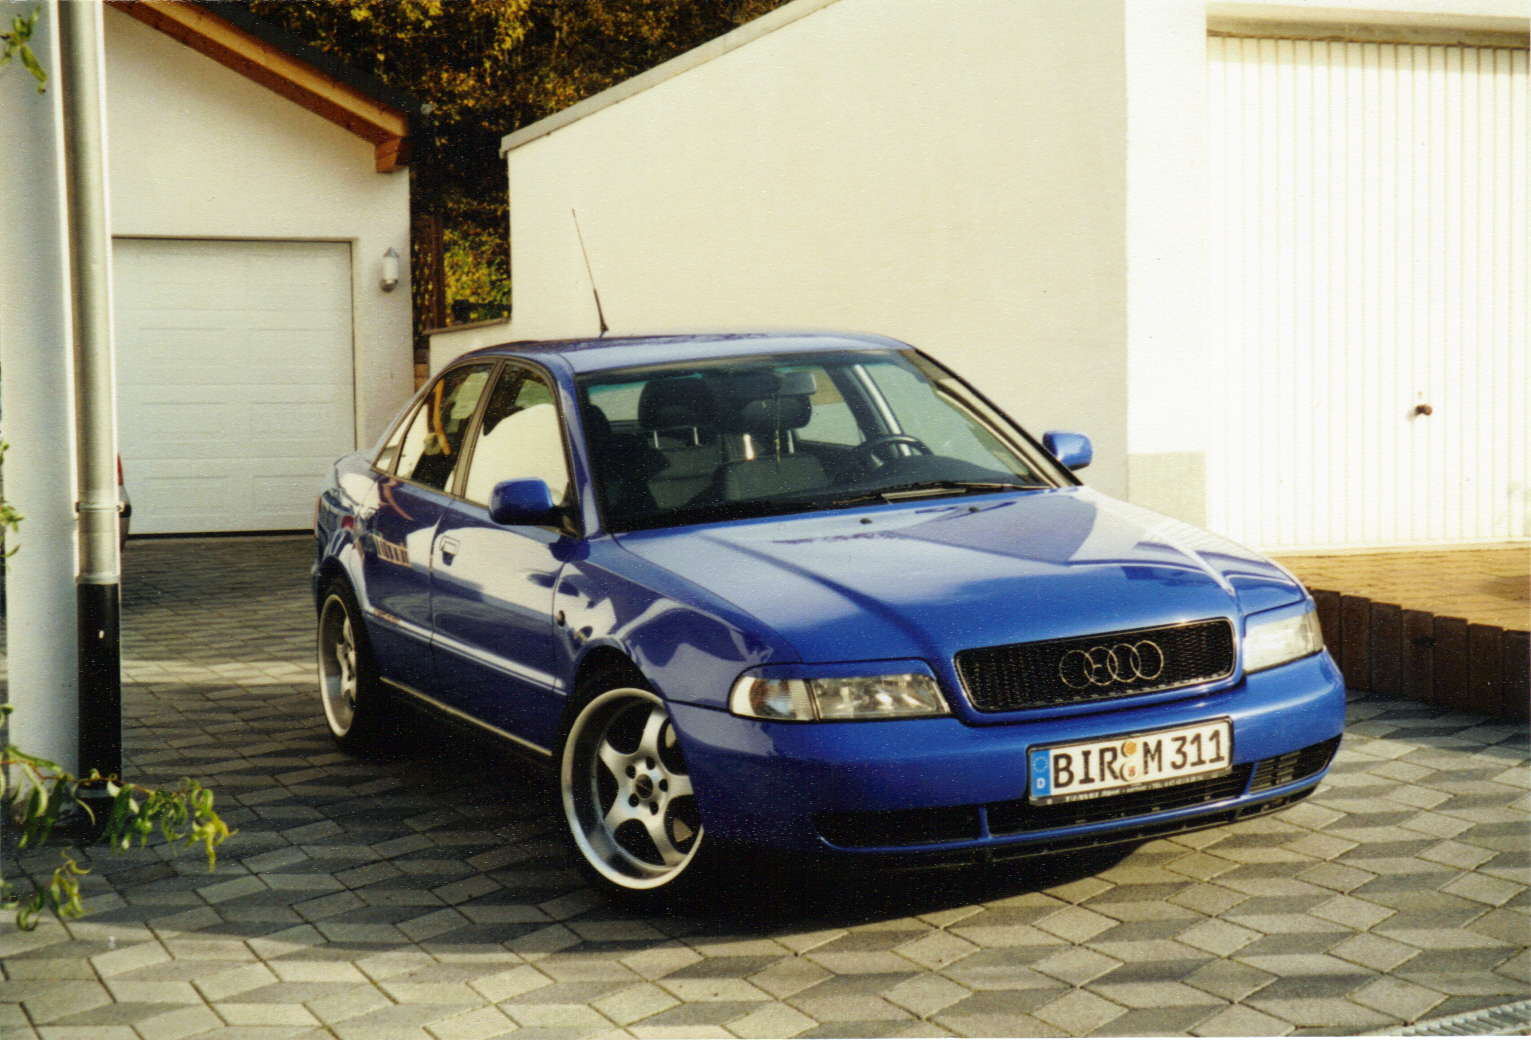 Ob Audi 80 B2, Audi 80 B3 oder B4, Audi A4 B5 oder B6 bis zum Coupe